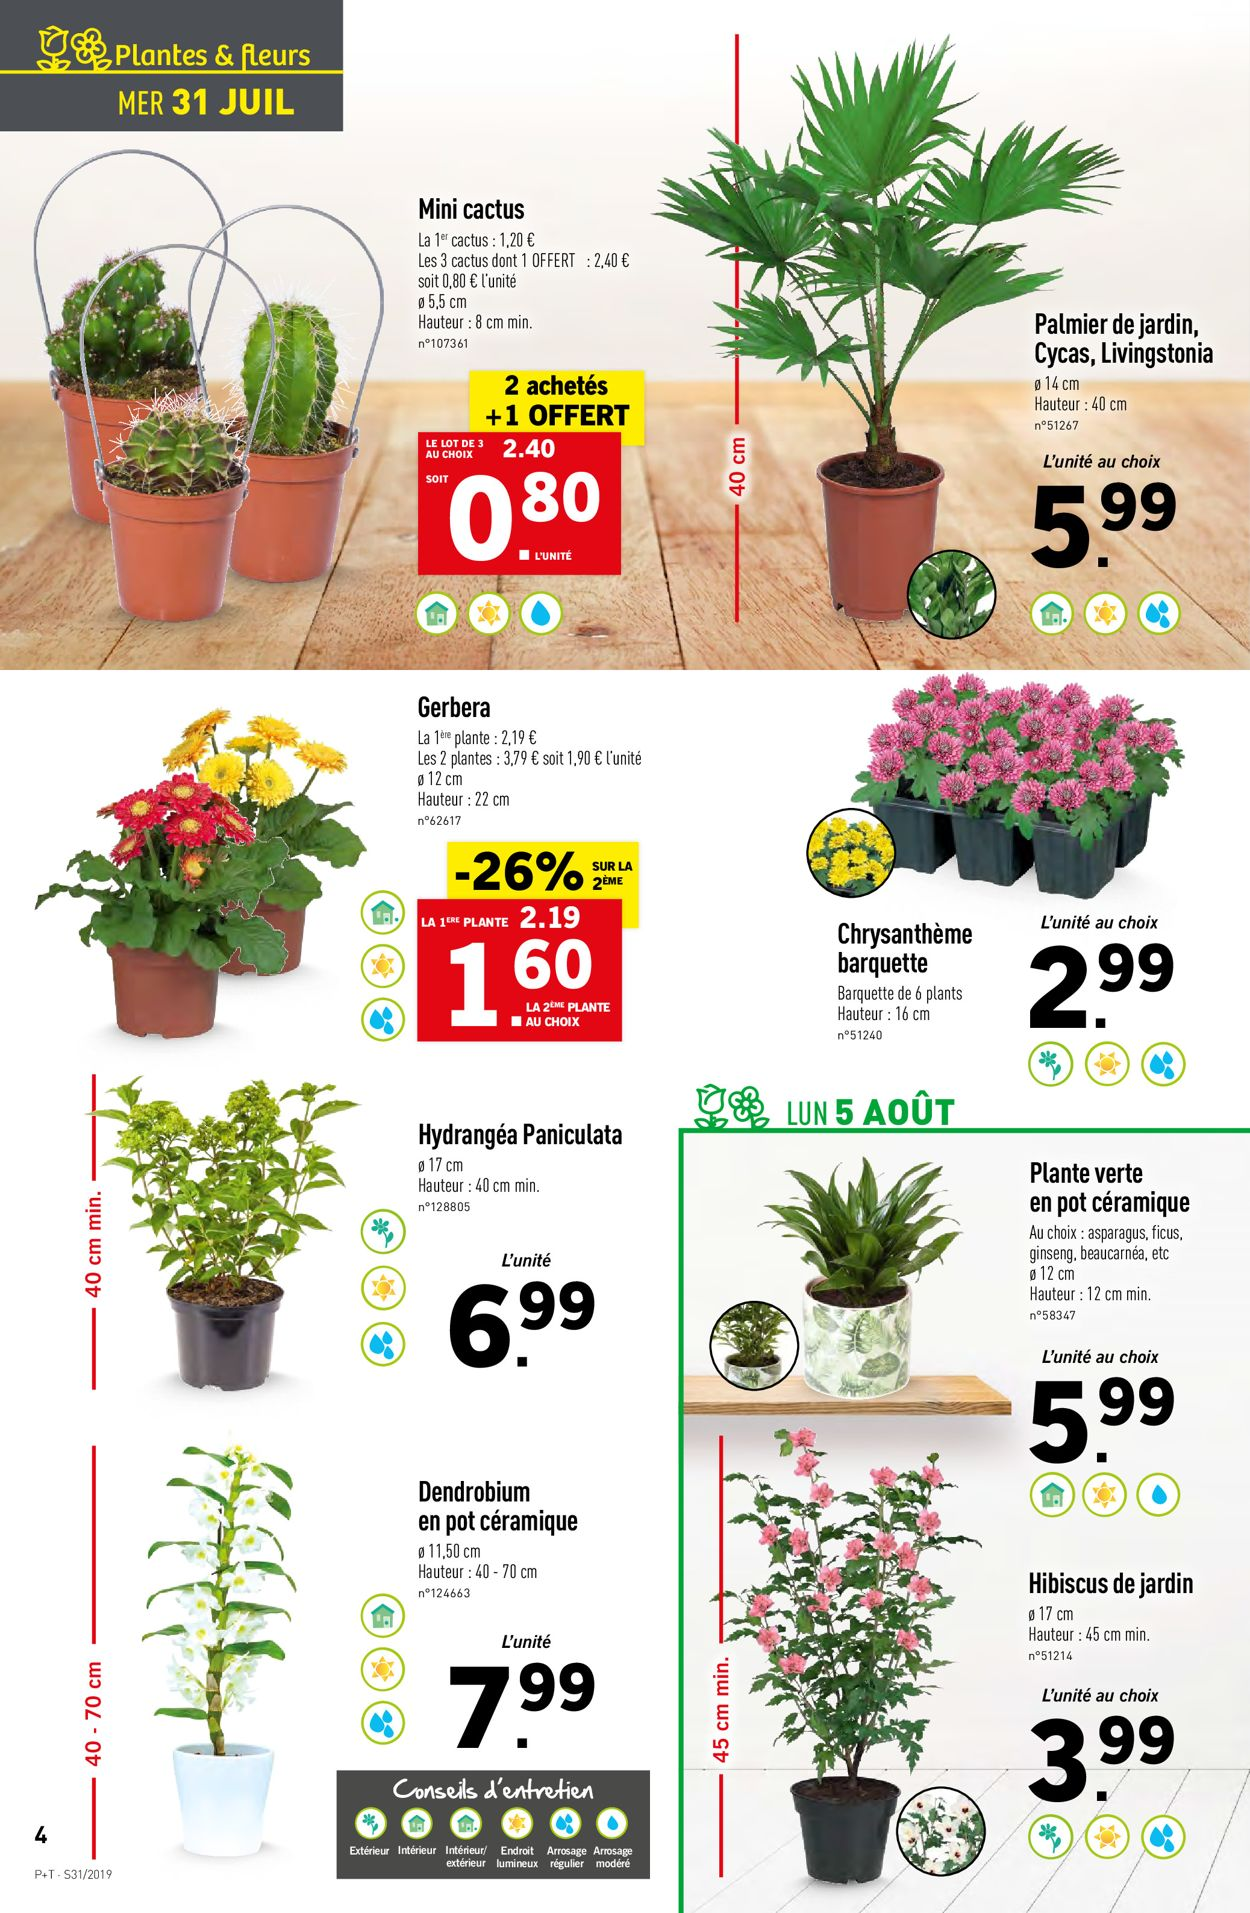 Lidl Catalogue - 31.07-06.08.2019 (Page 4)